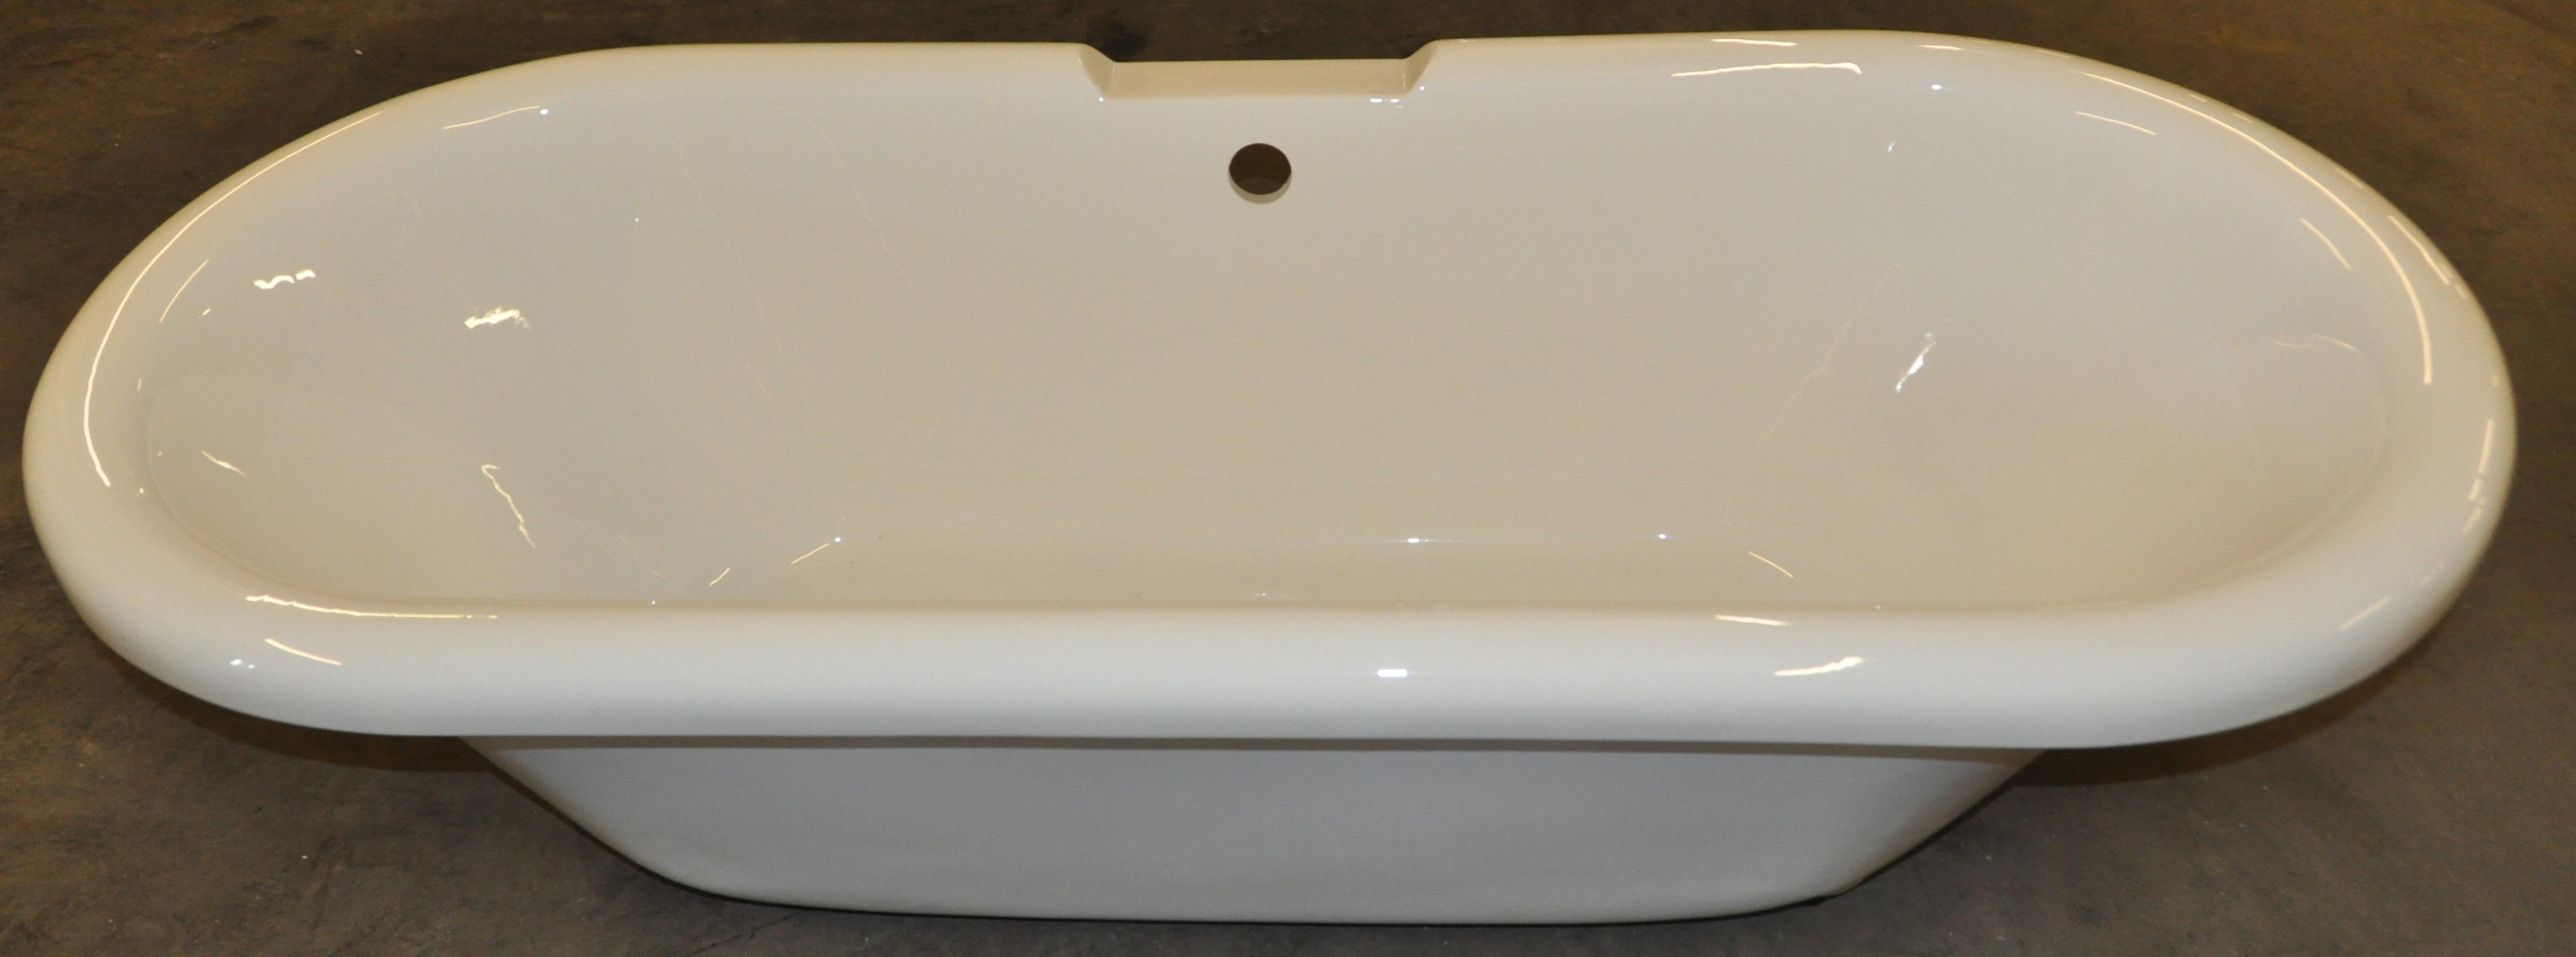 lot 3822 1 x freestanding roll top bath with central waste and tap